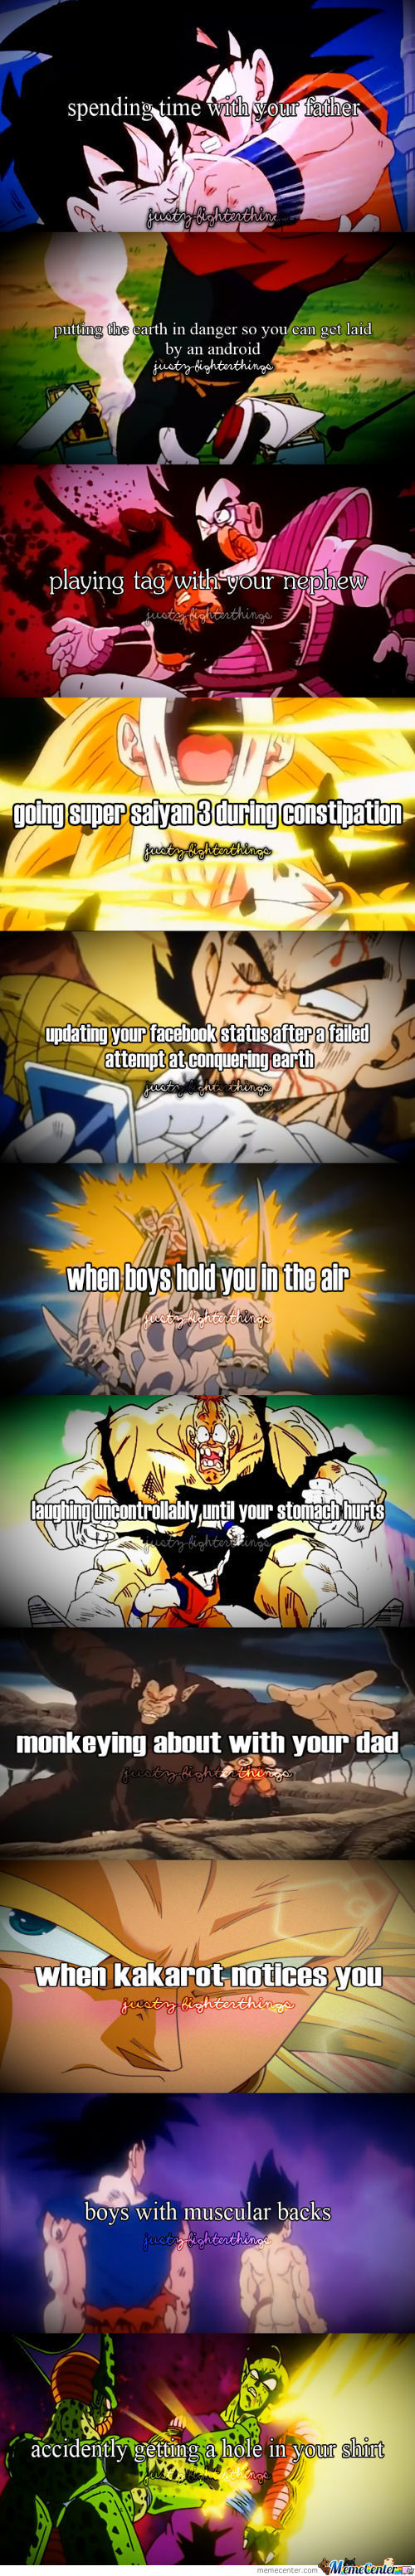 Justzfighterthings #2